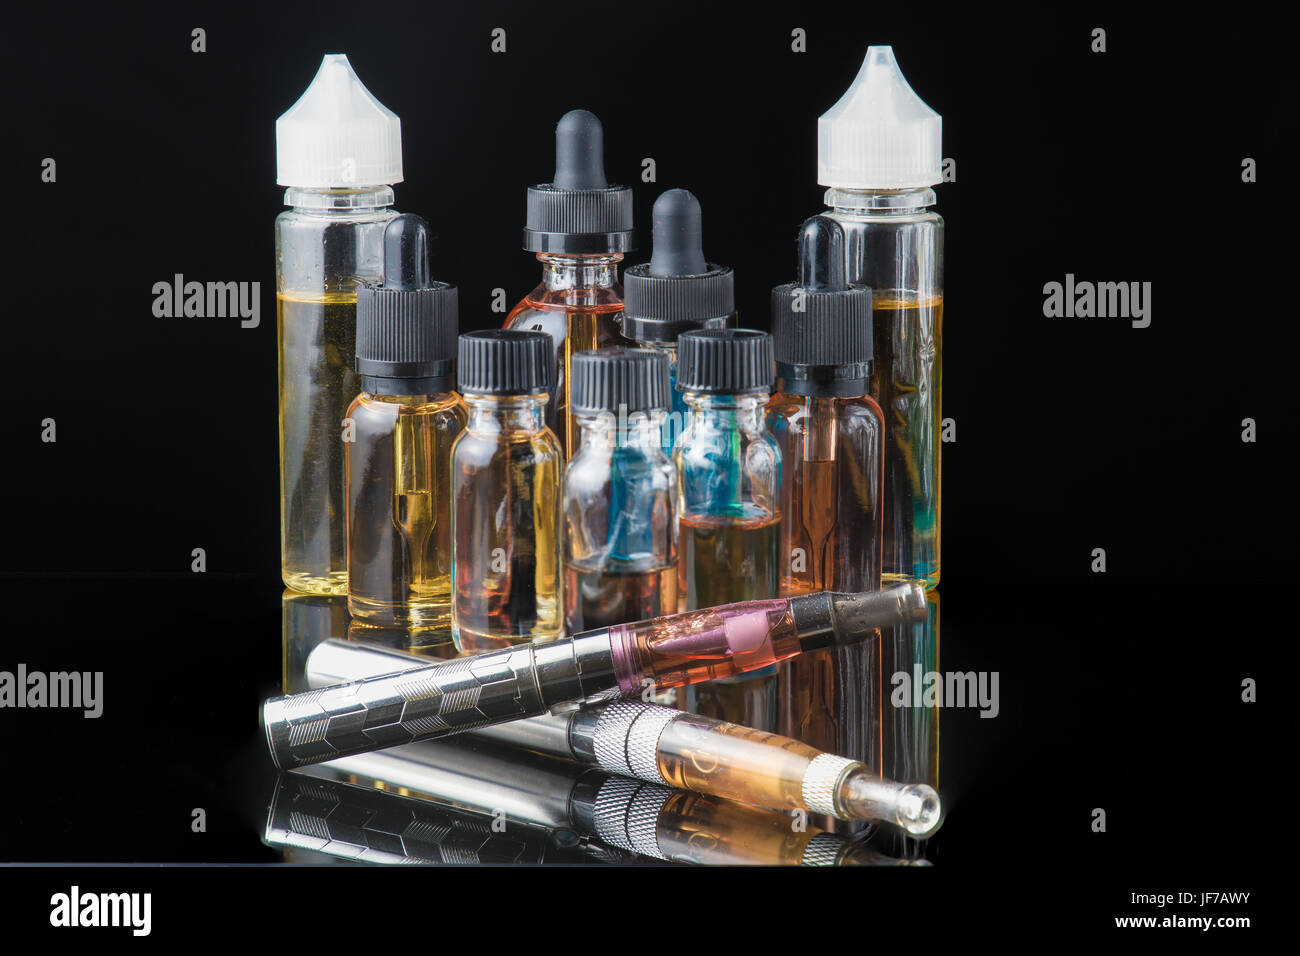 Collection of electronic cigarette equipment with smoke - Stock Image